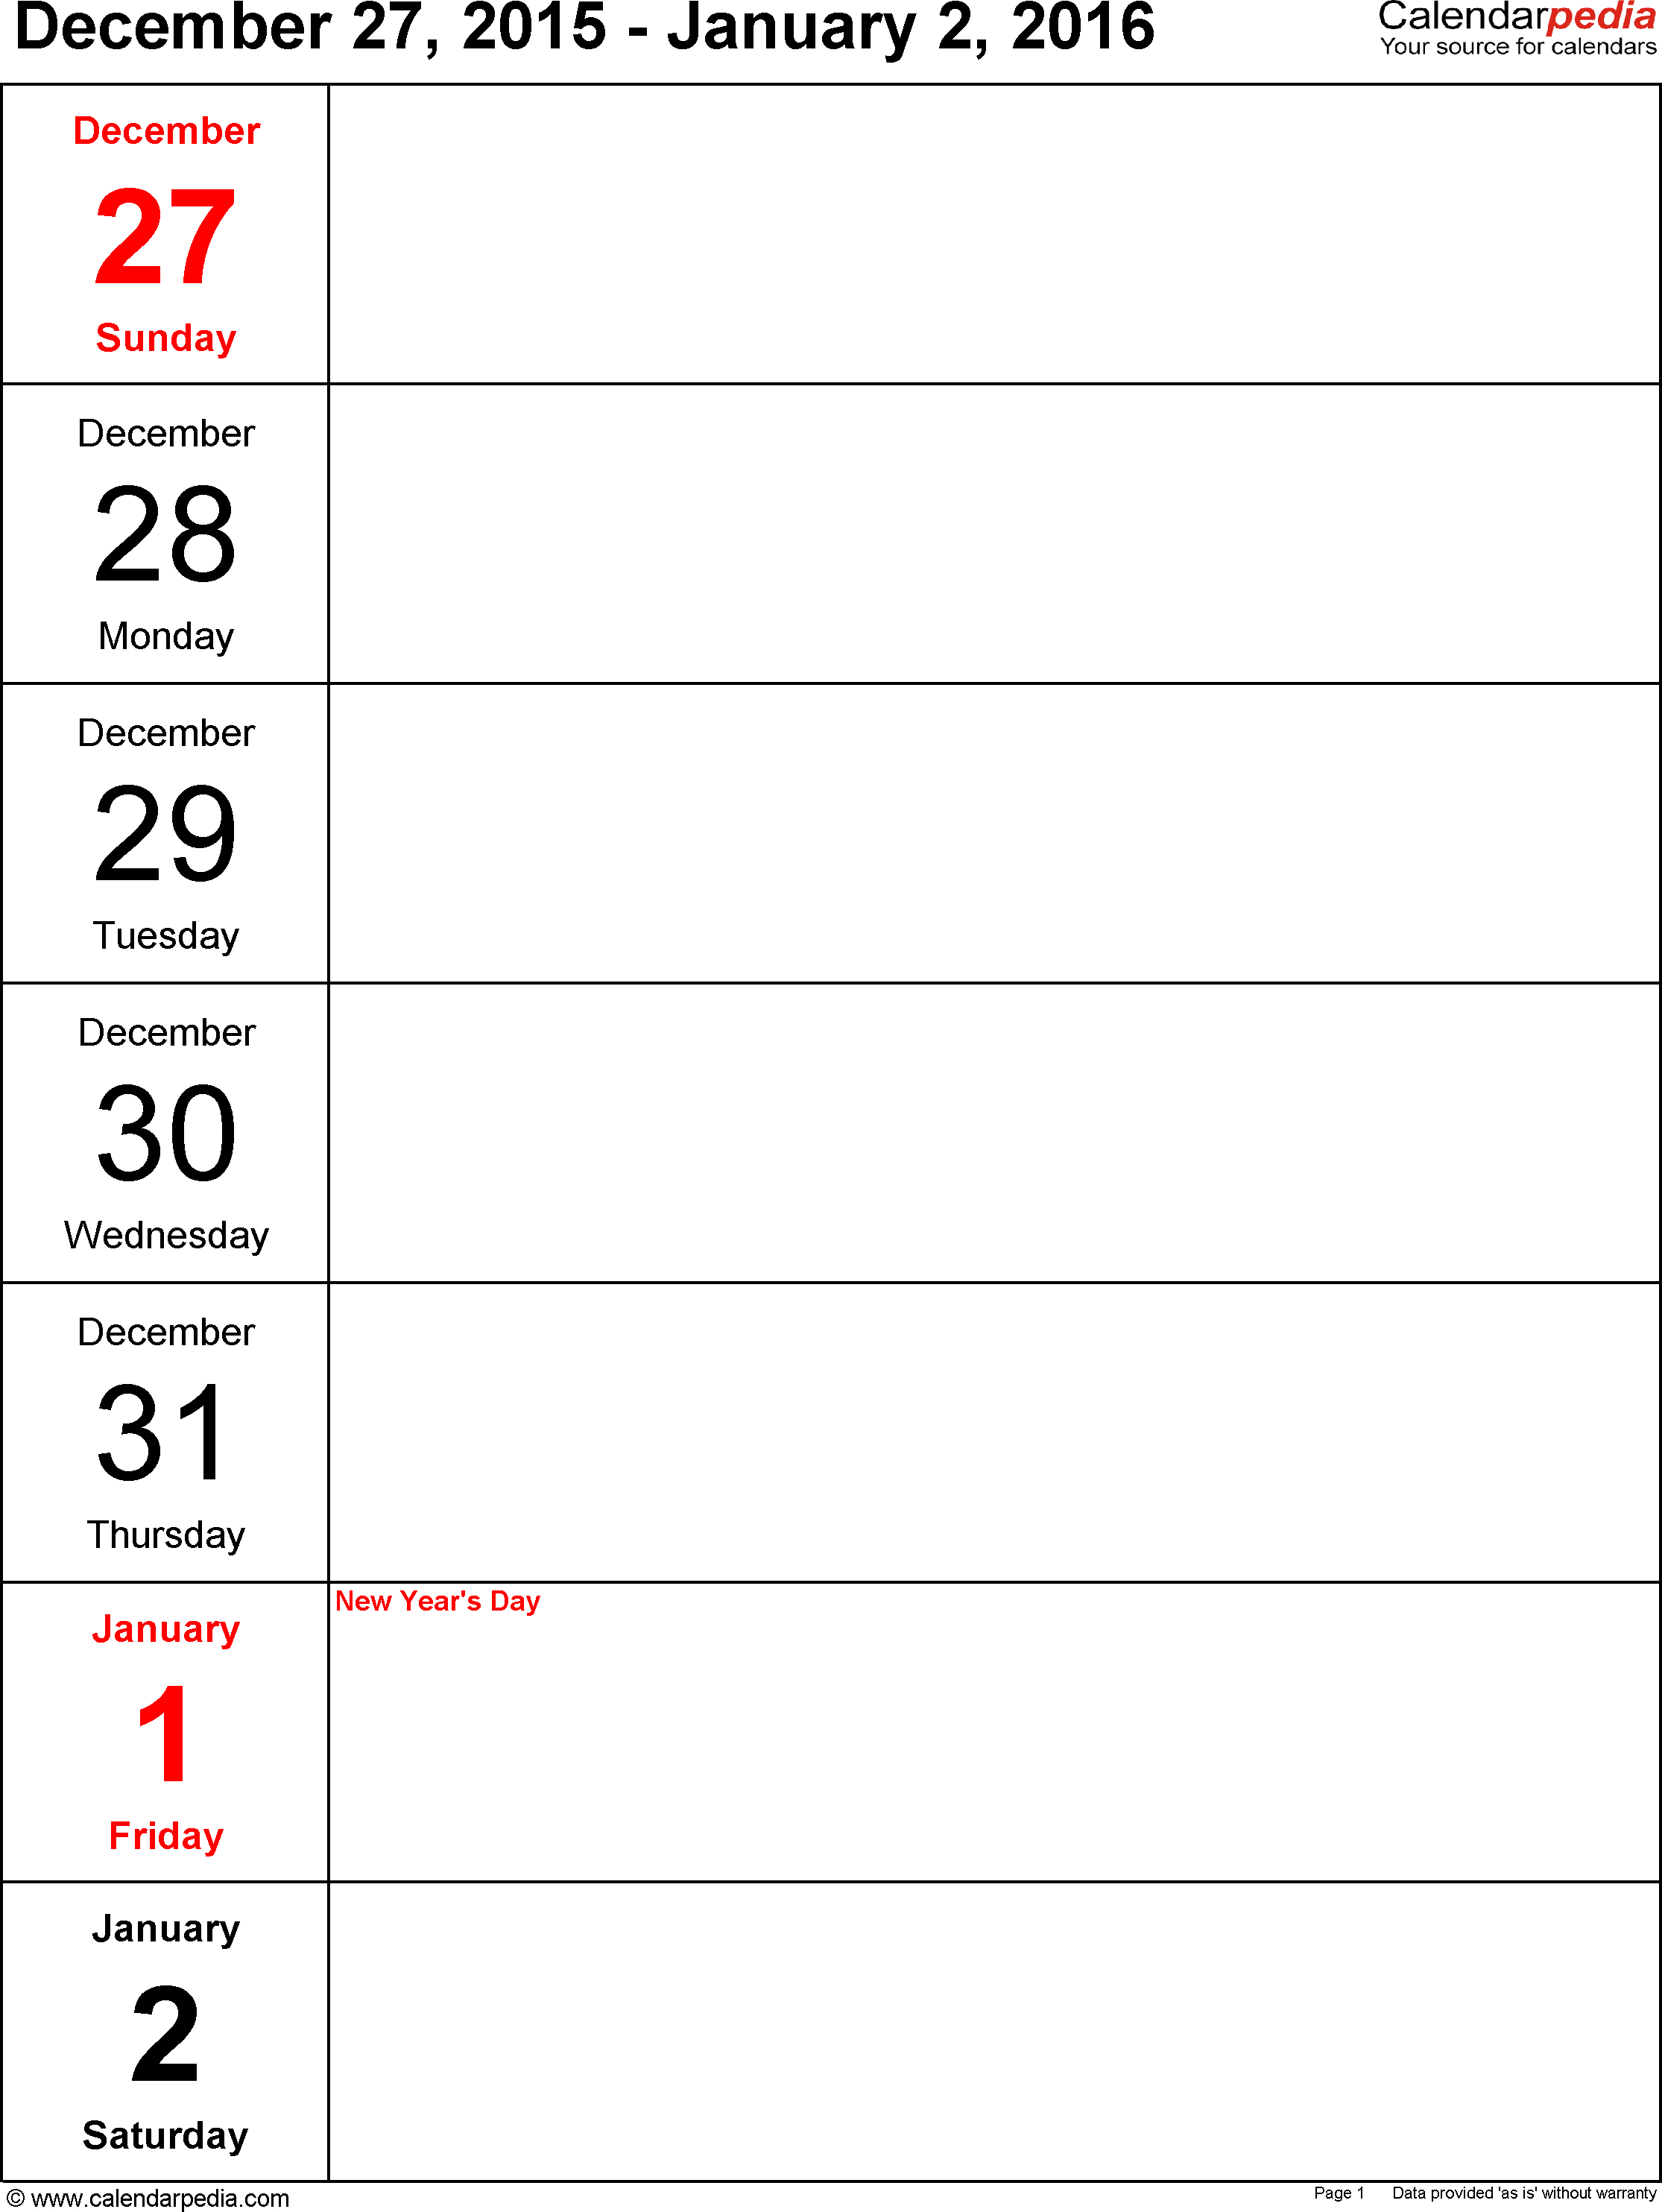 Weekly Calendar 2016 For Pdf - 12 Free Printable Templates inside Free 7 Day Work Schedule Template Pdf